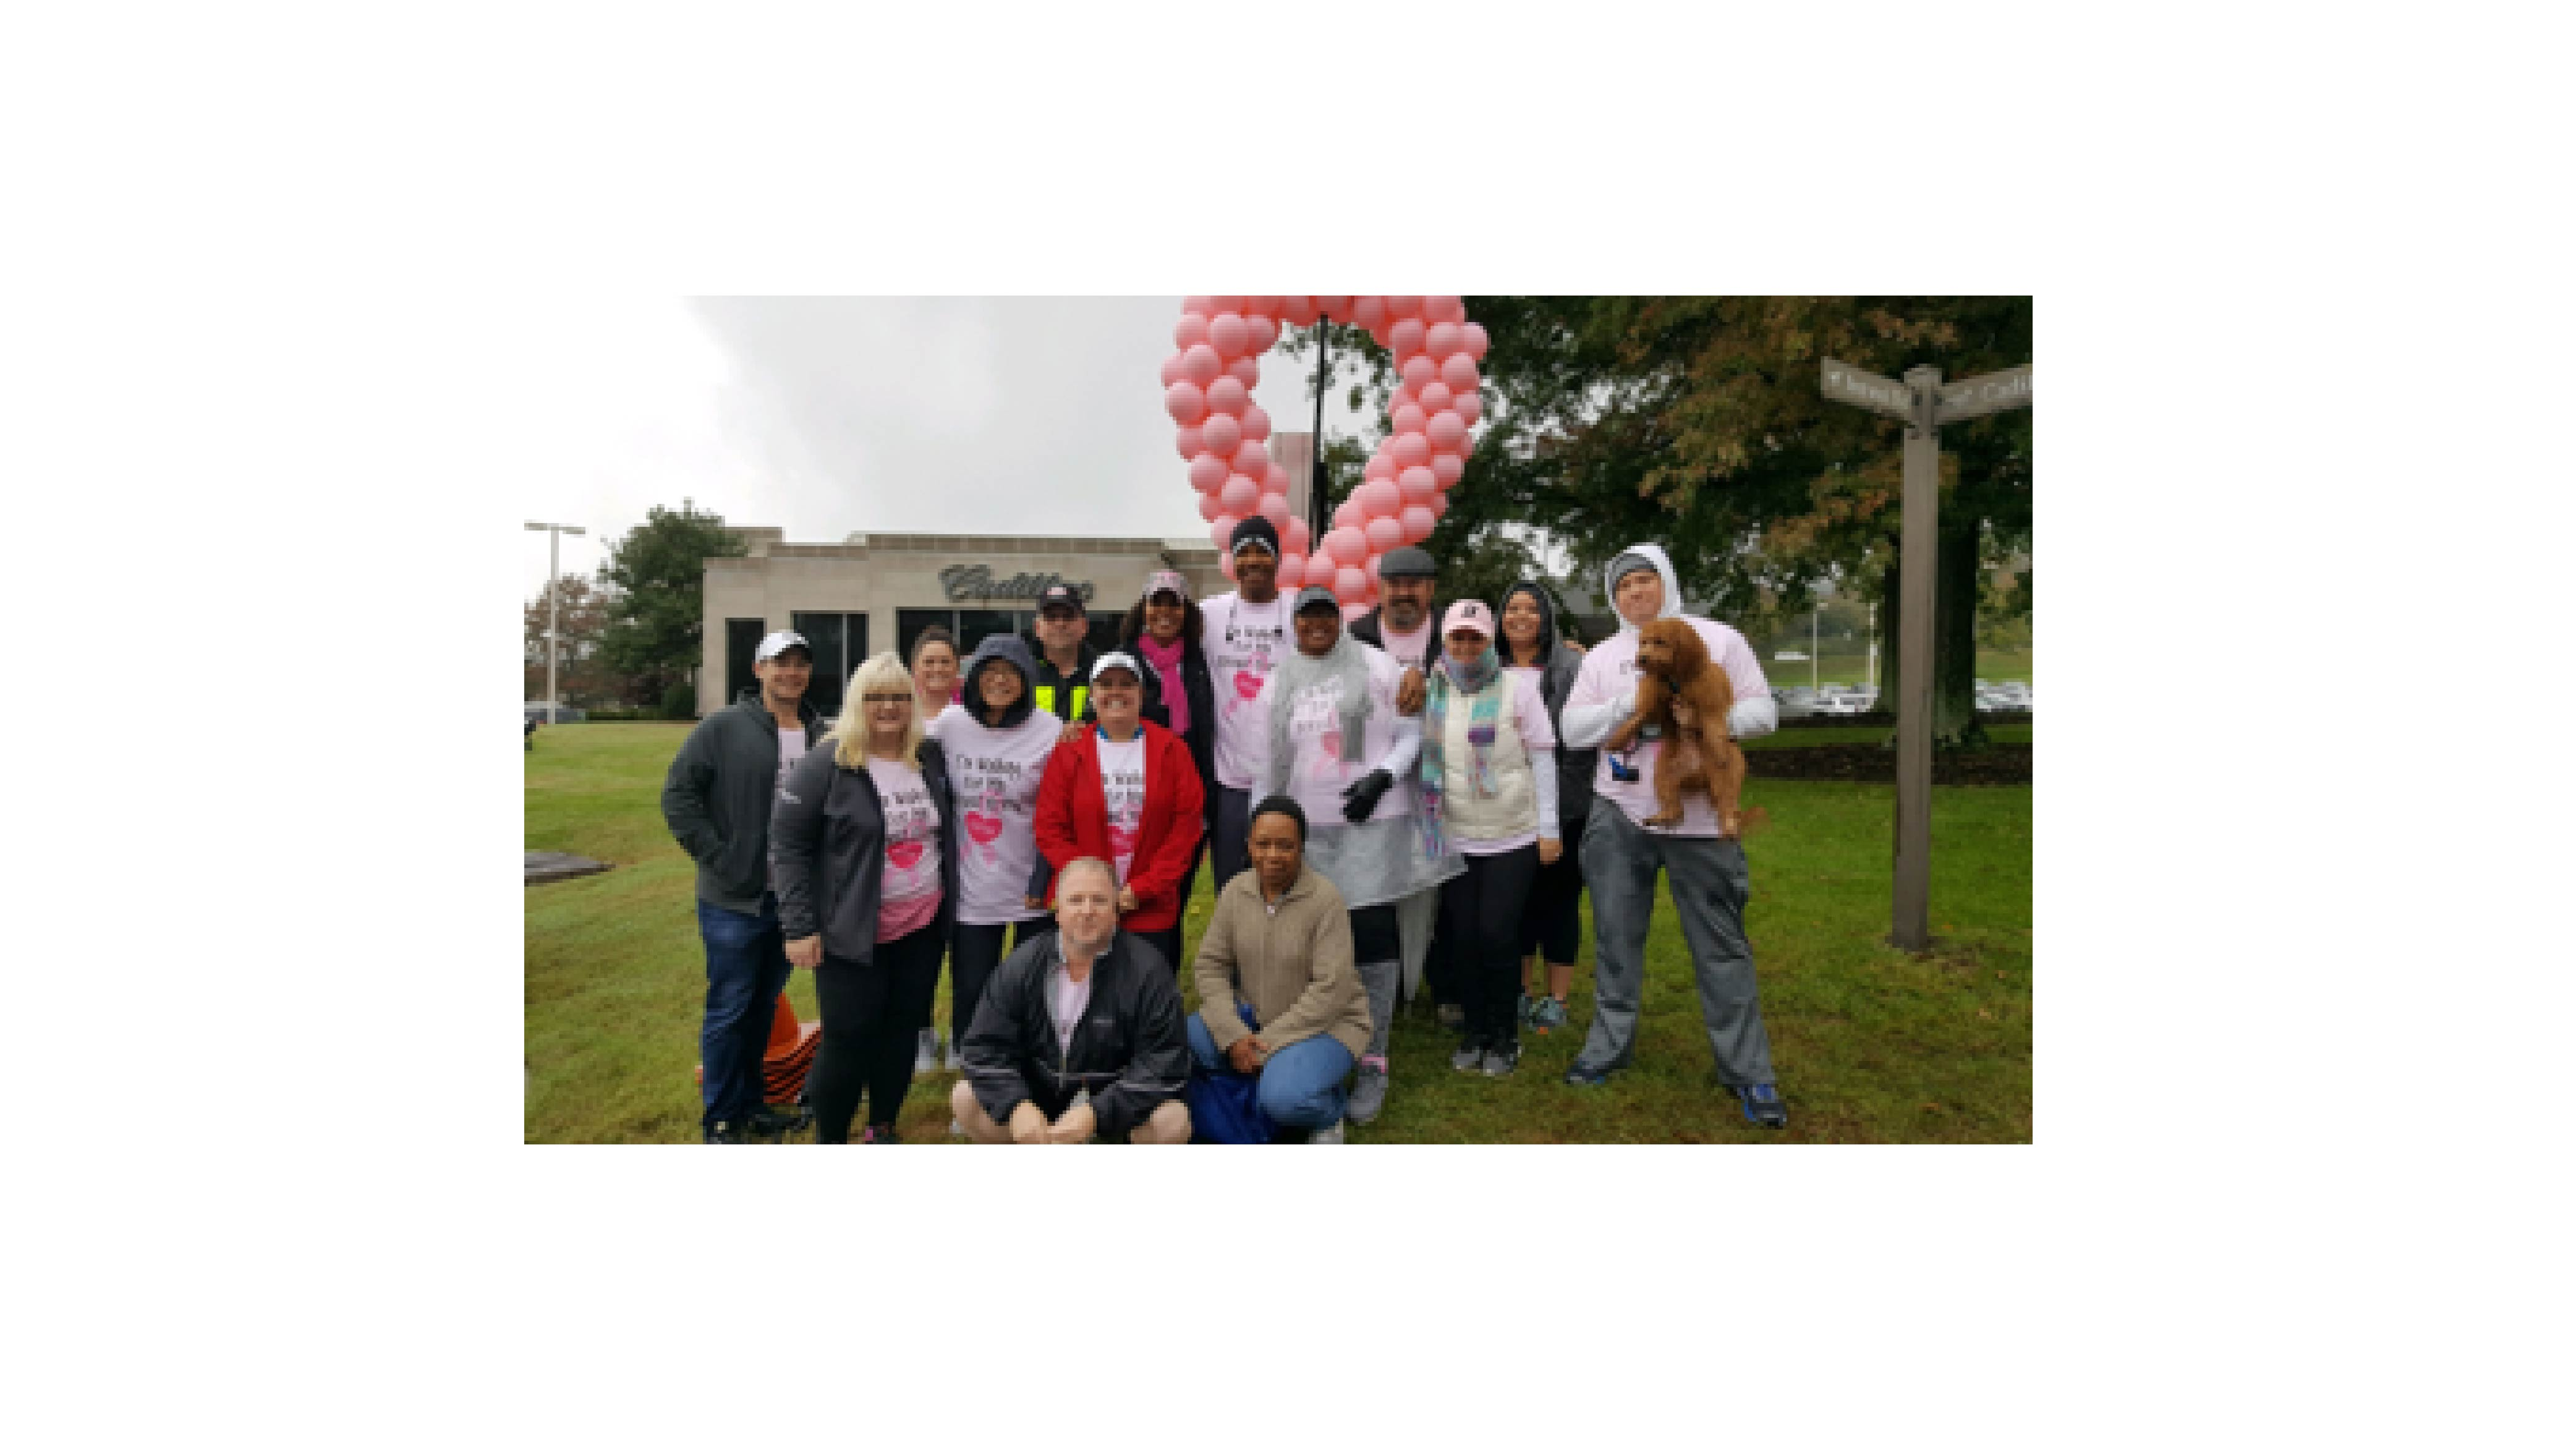 GCR employees race for the cure nashville, tn